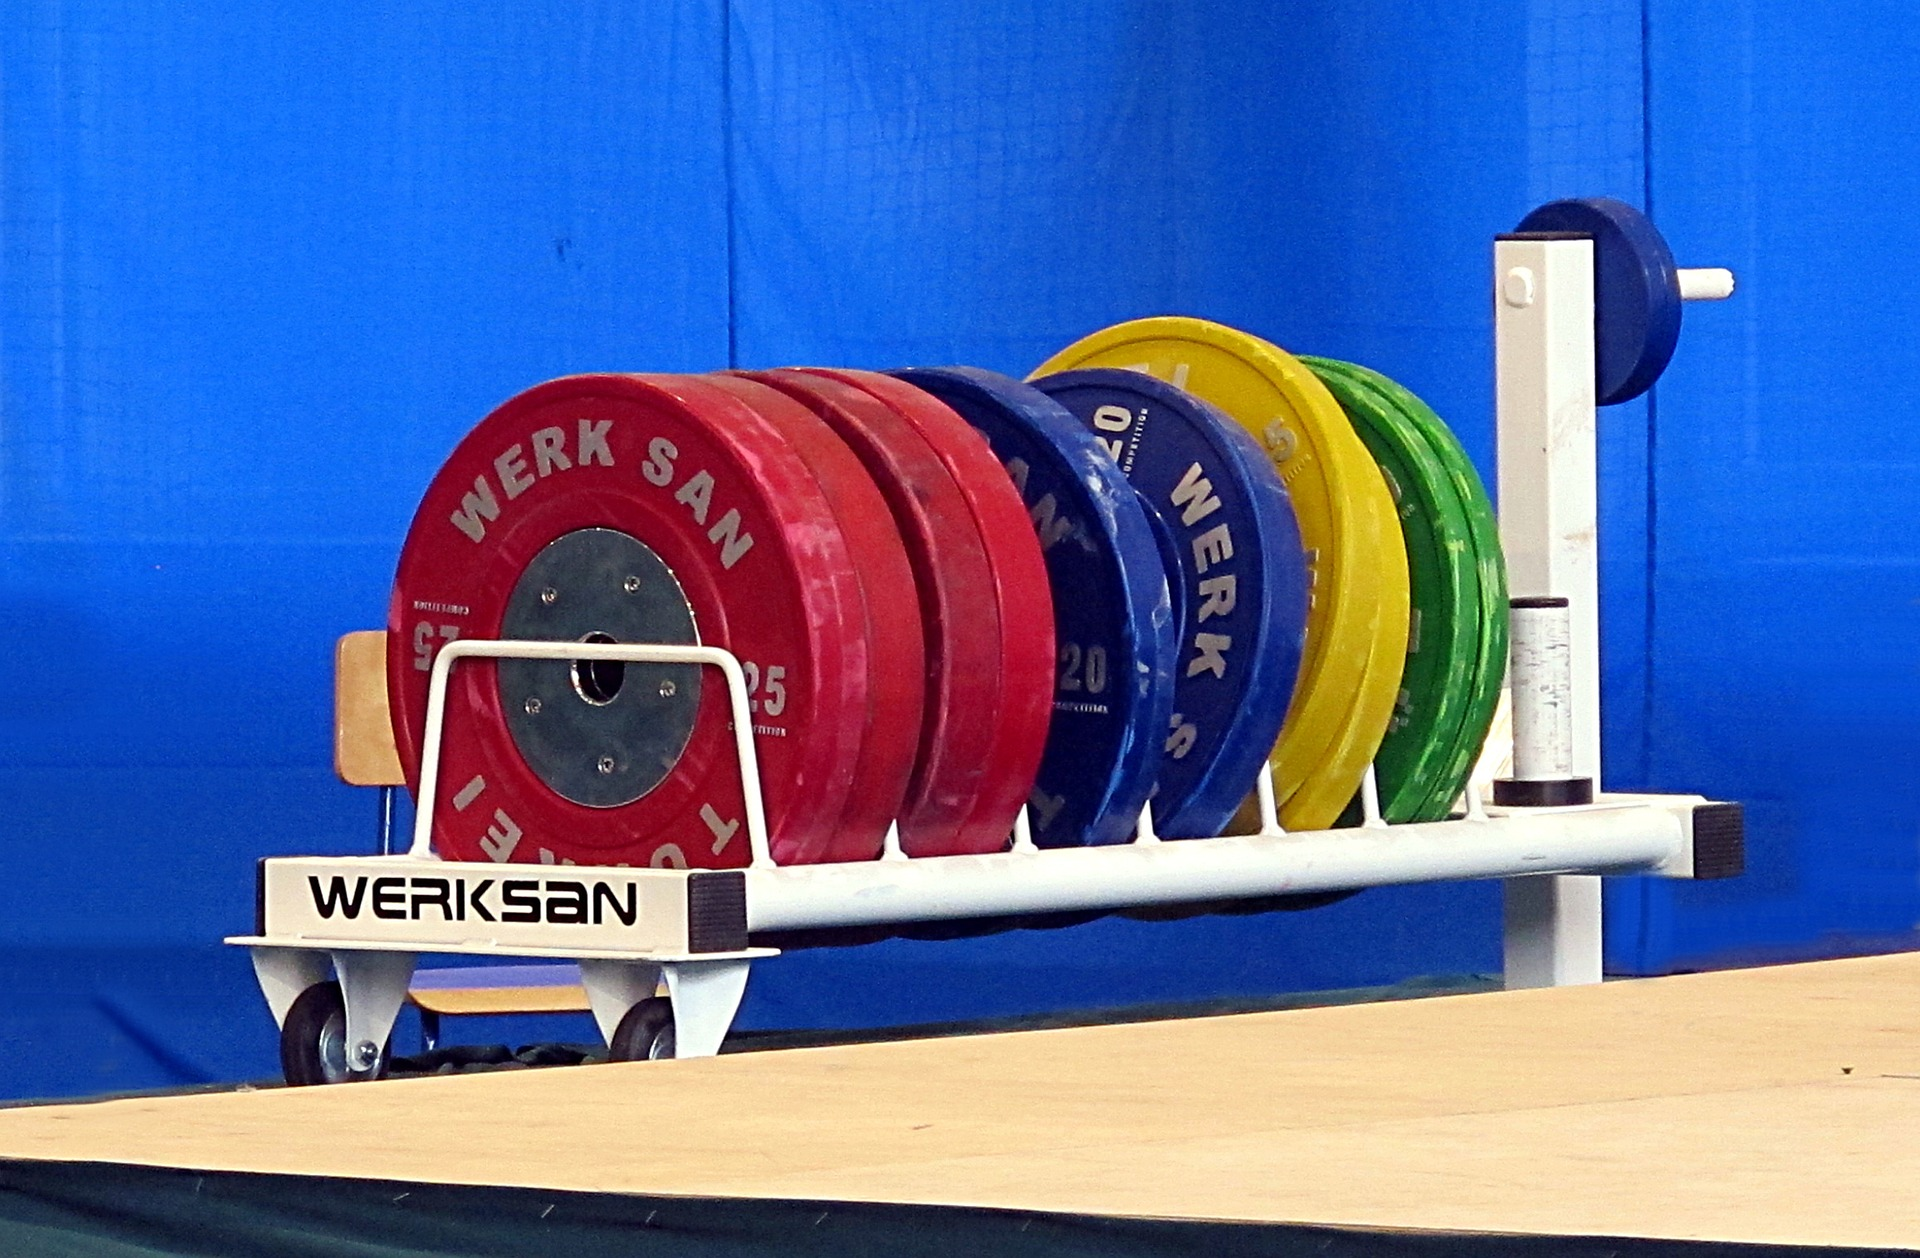 Weightlifting's Olympic Spot Might be in Danger Amid ARD's Doping Claims